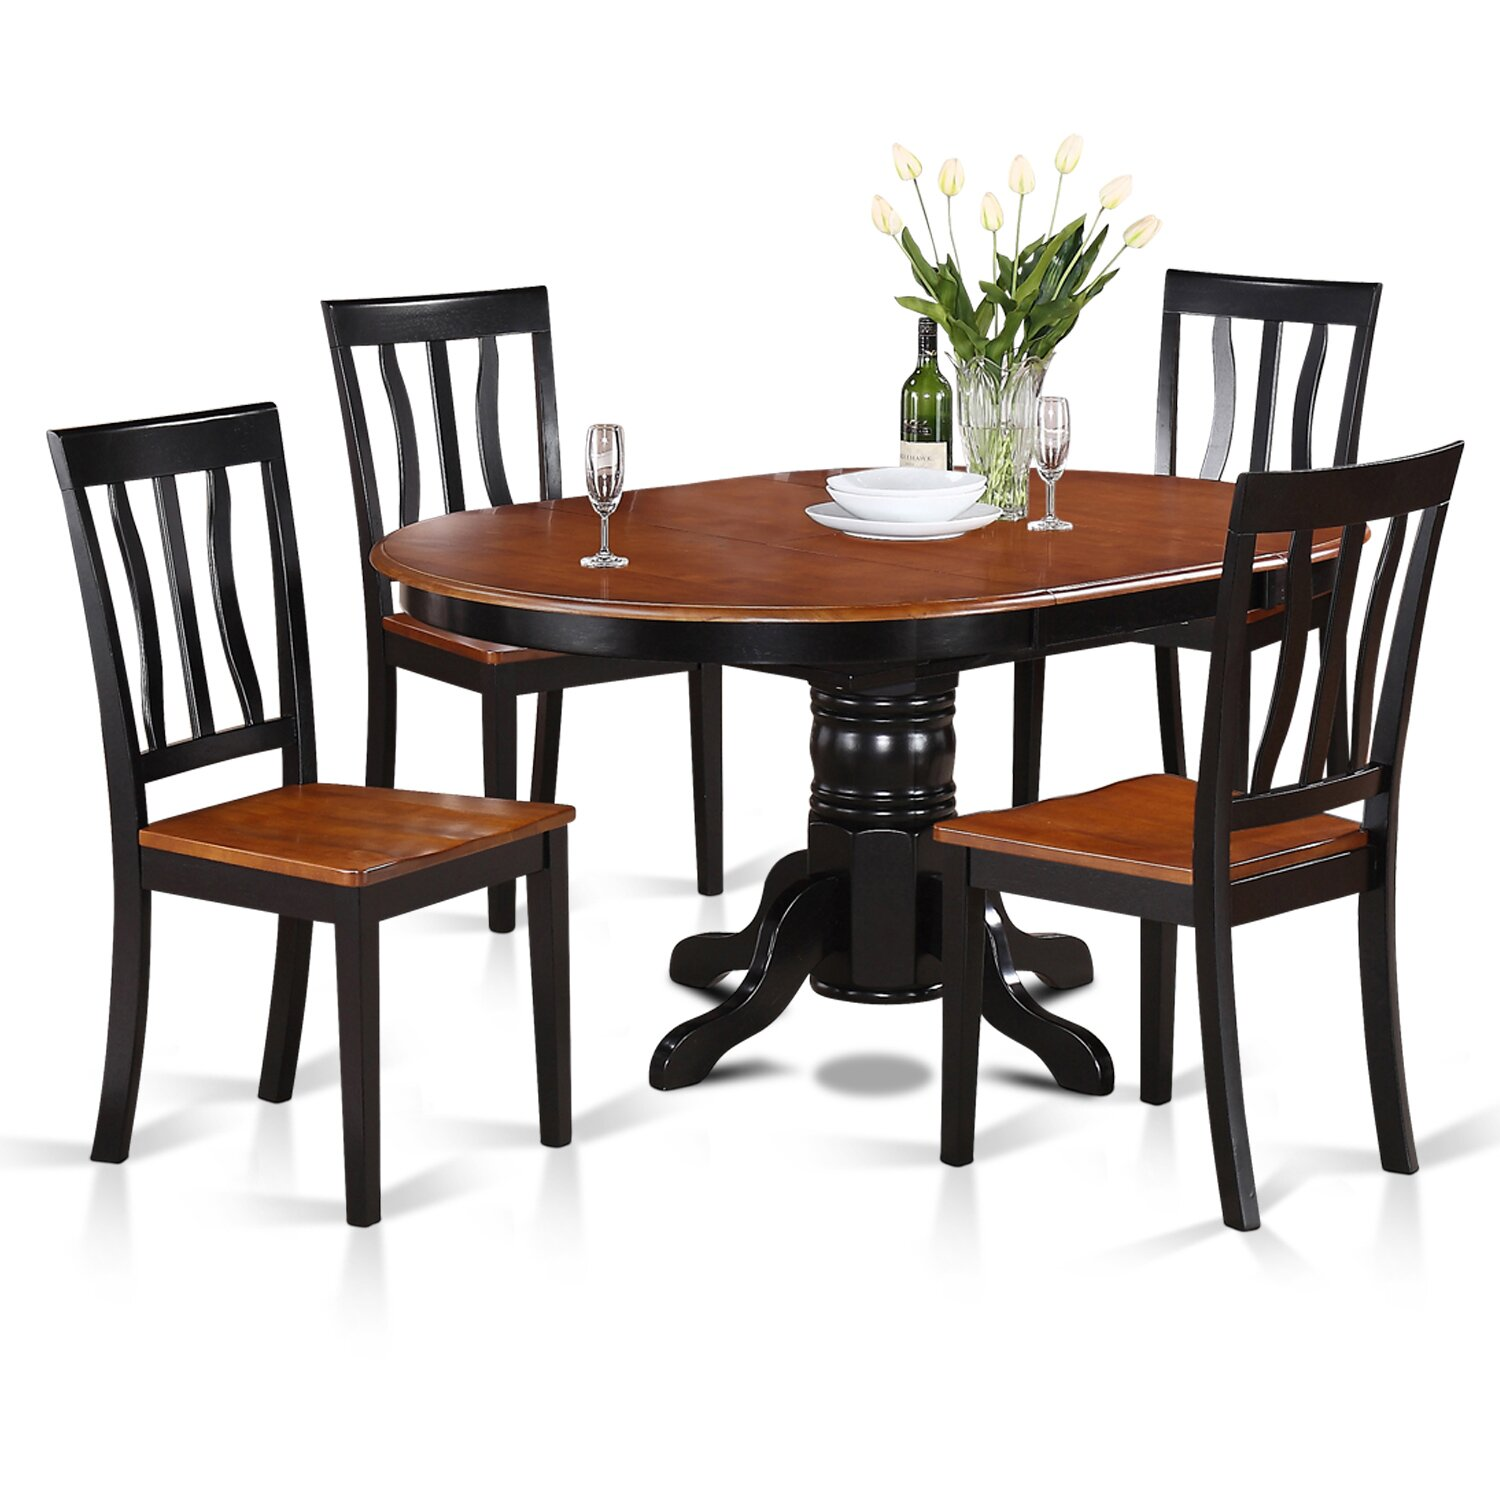 Wooden importers easton 5 piece dining set reviews wayfair for 5 piece dining set